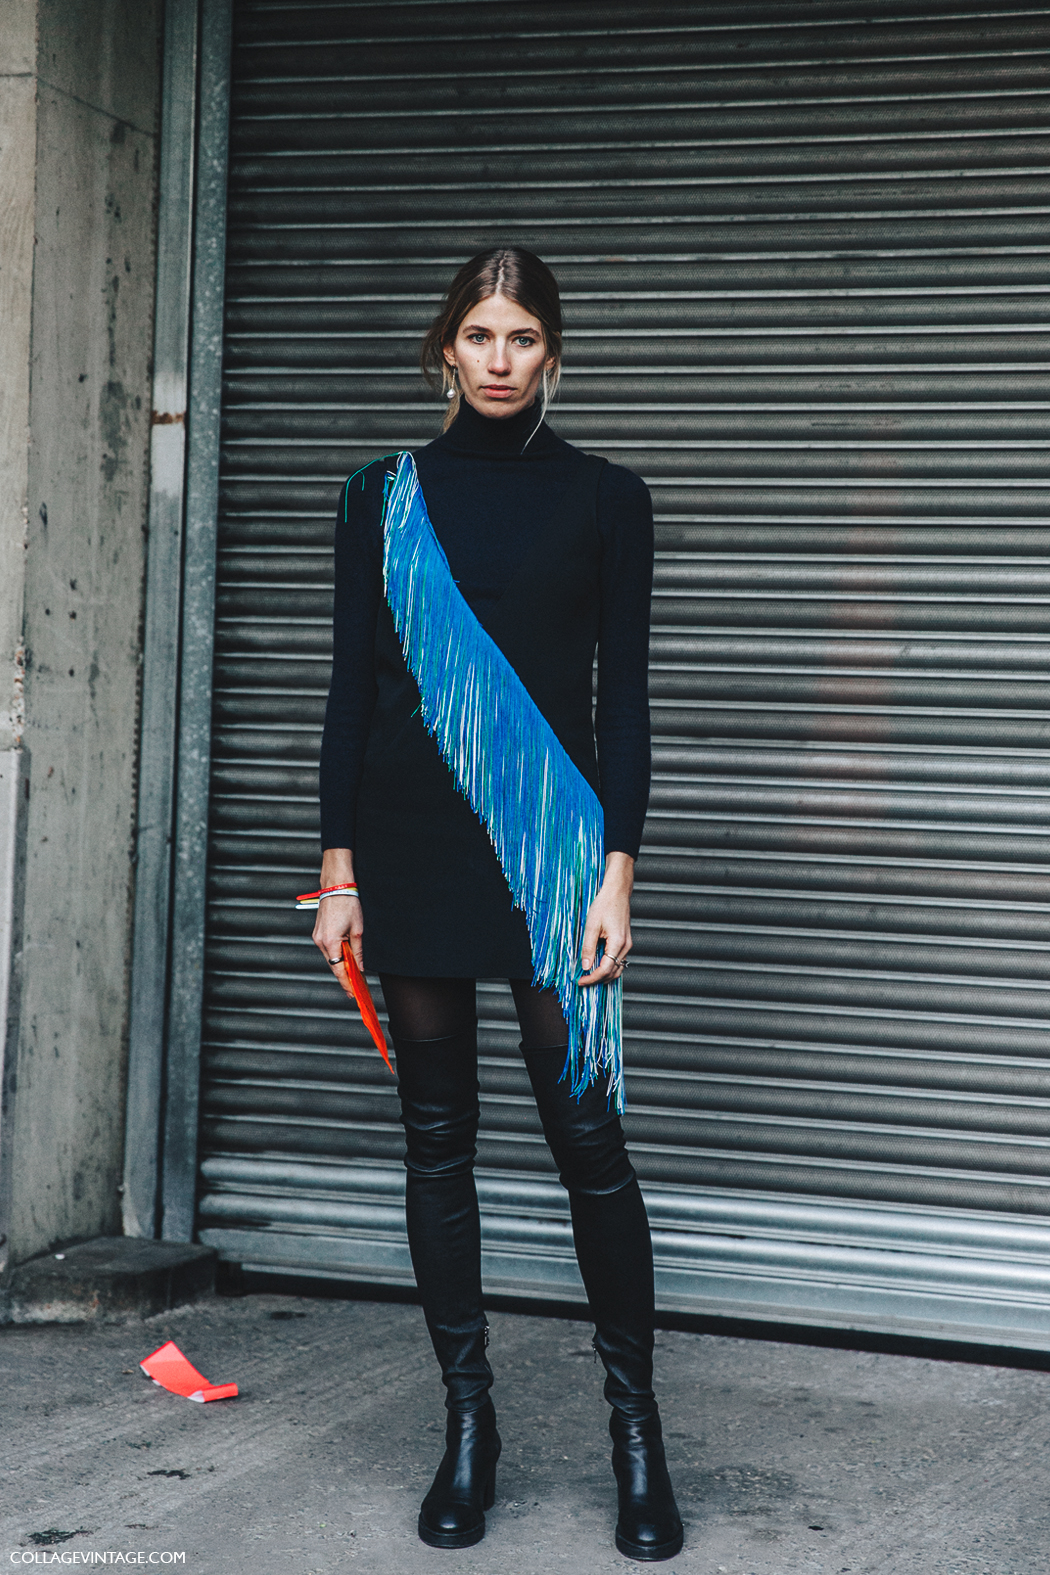 LFW-London_Fashion_Week_Fall_16-Street_Style-Collage_Vintage-Veronika_Heilbrunner-Christopher_Kane-Over_The_Knee_Boots-2